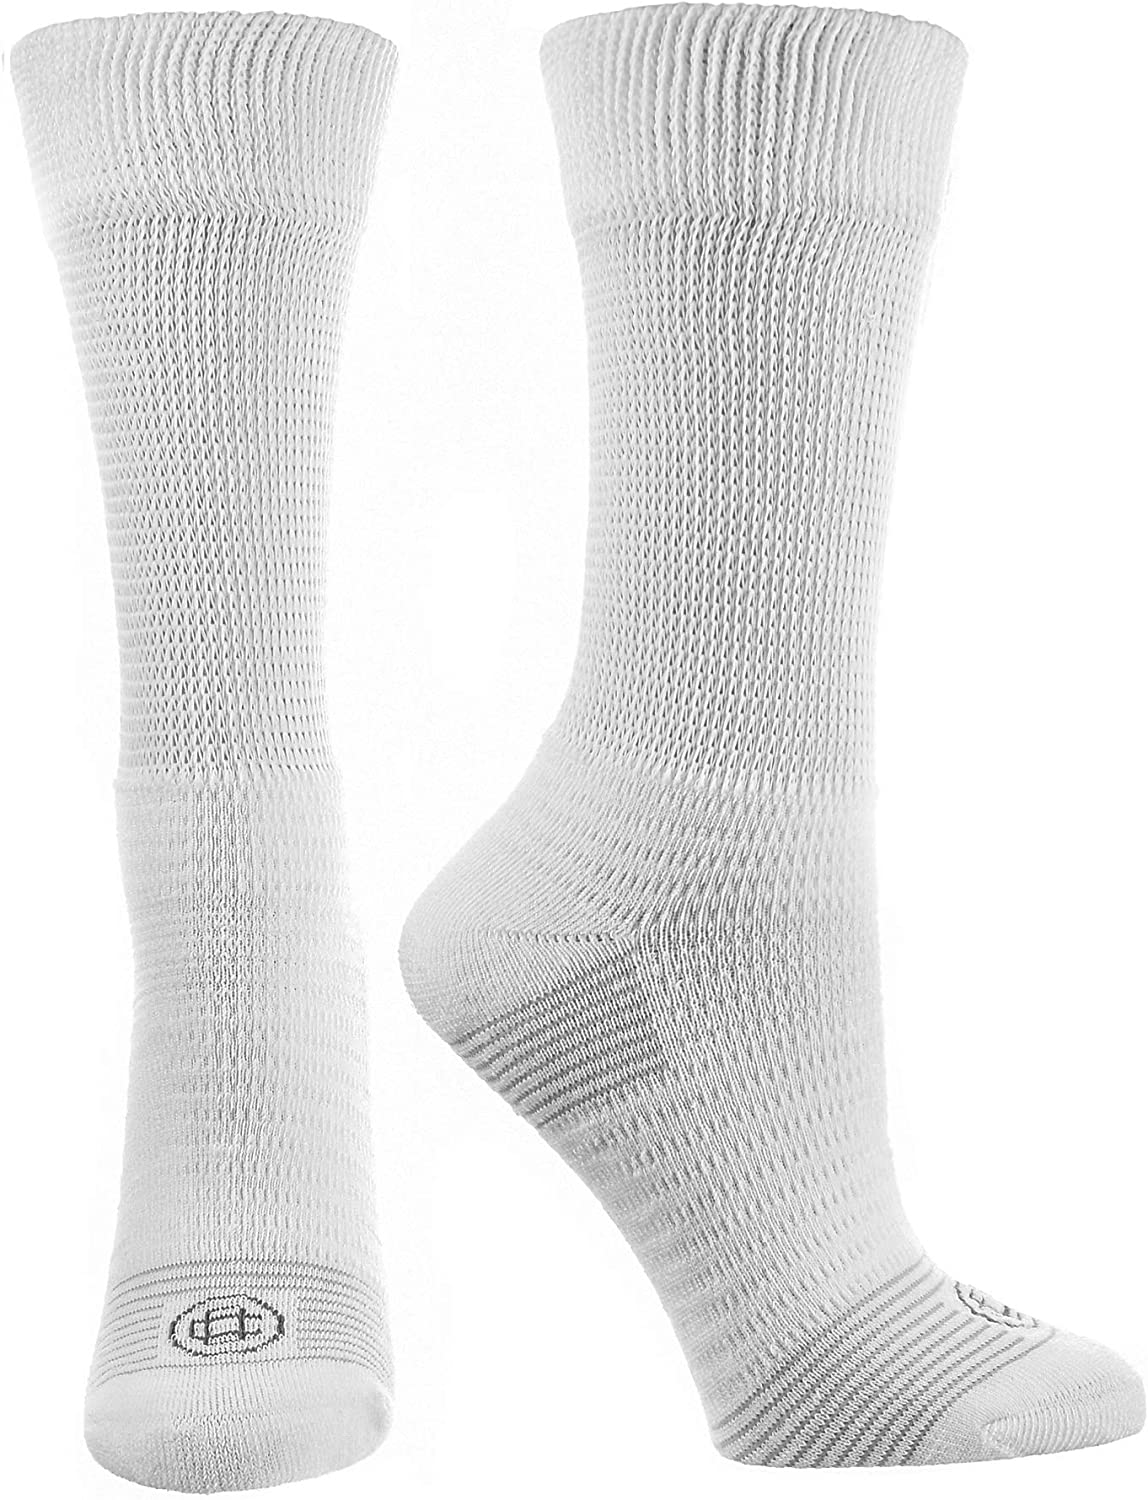 Doctor's Choice Men's Diabetic & Neuropathy Crew Socks, Non-Binding Cushion Crew Sock with Aloe, Antimicrobial, Ventilation, and Seamless Toe, 2-Pairs, White, Mens Large: Sock Size 10-13: Health & Personal Care